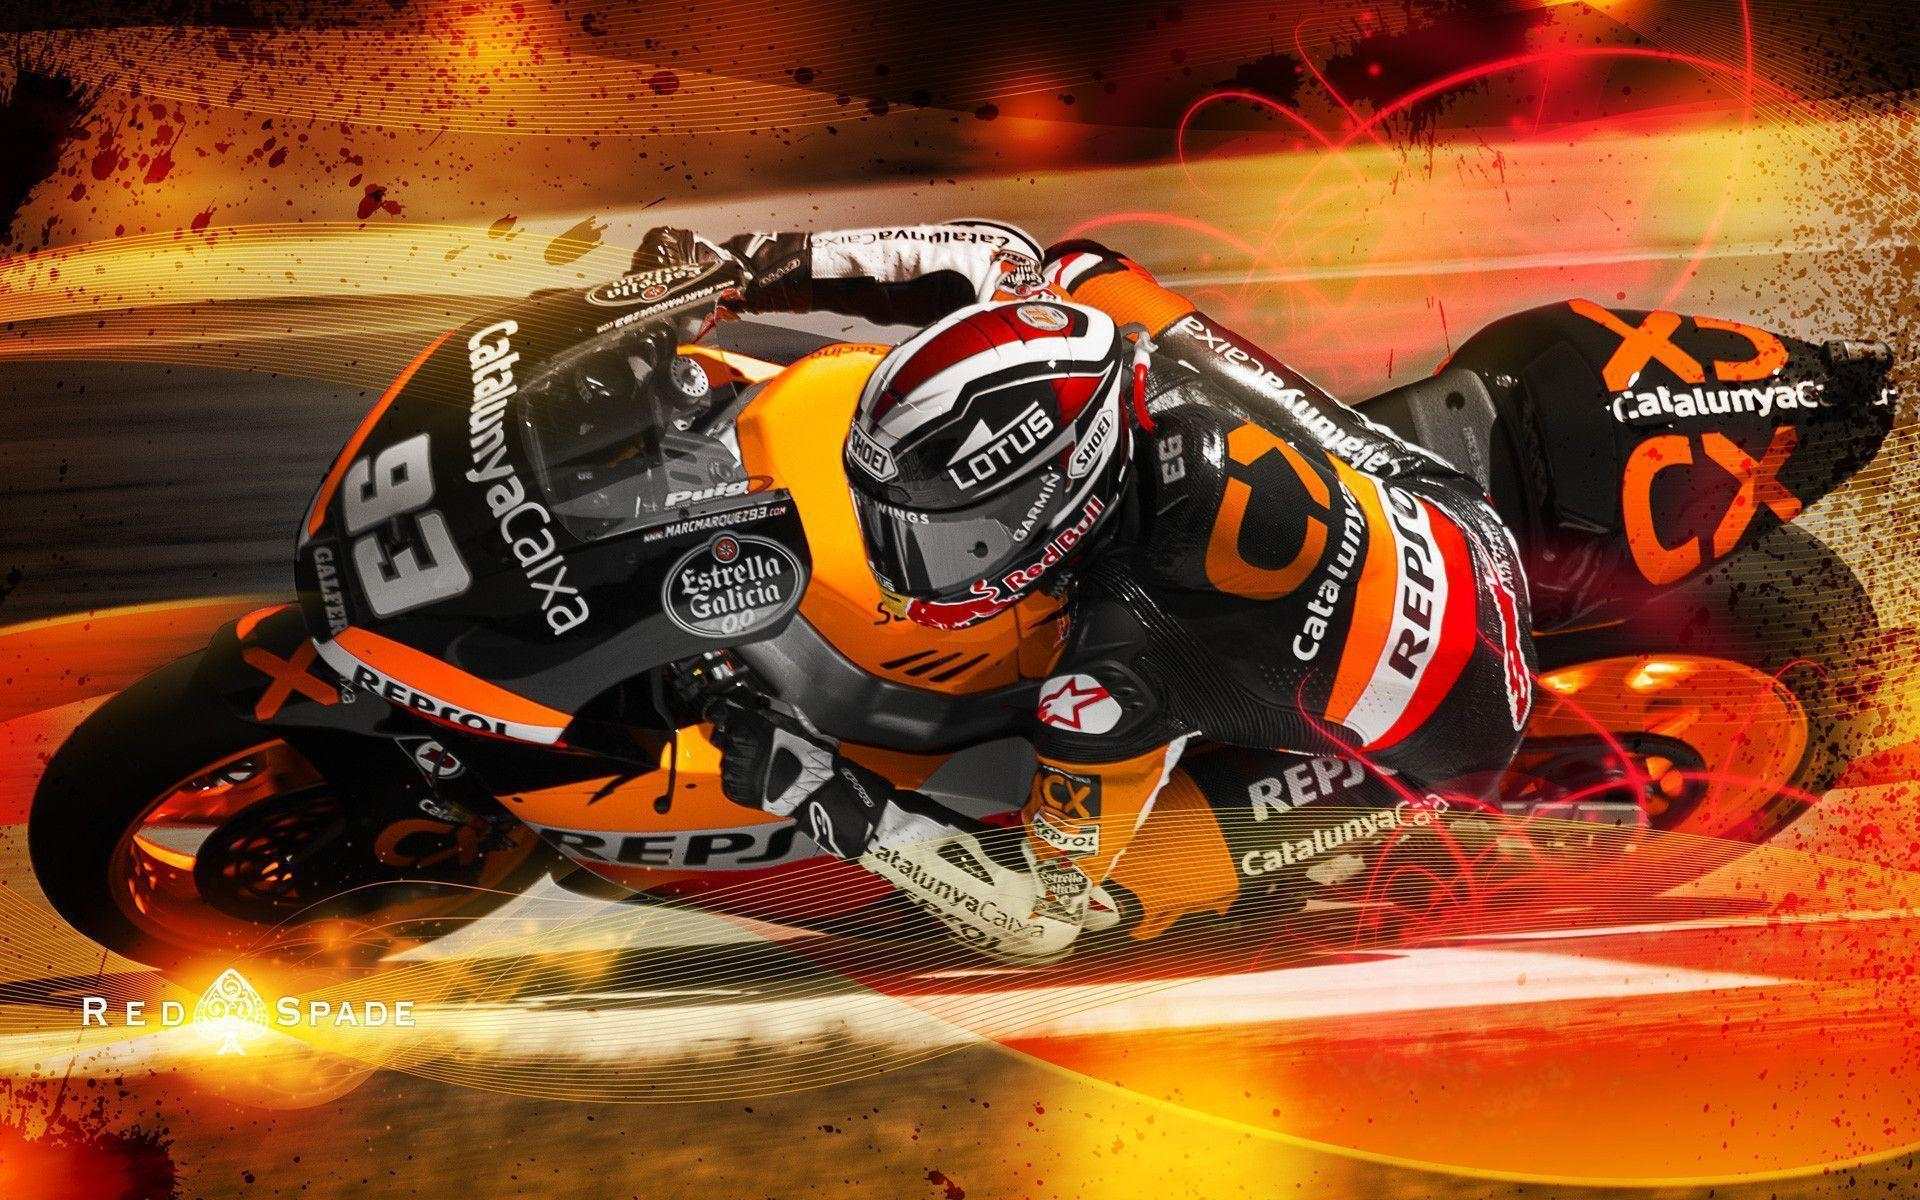 Moto GP Wallpapers - Wallpaper Cave